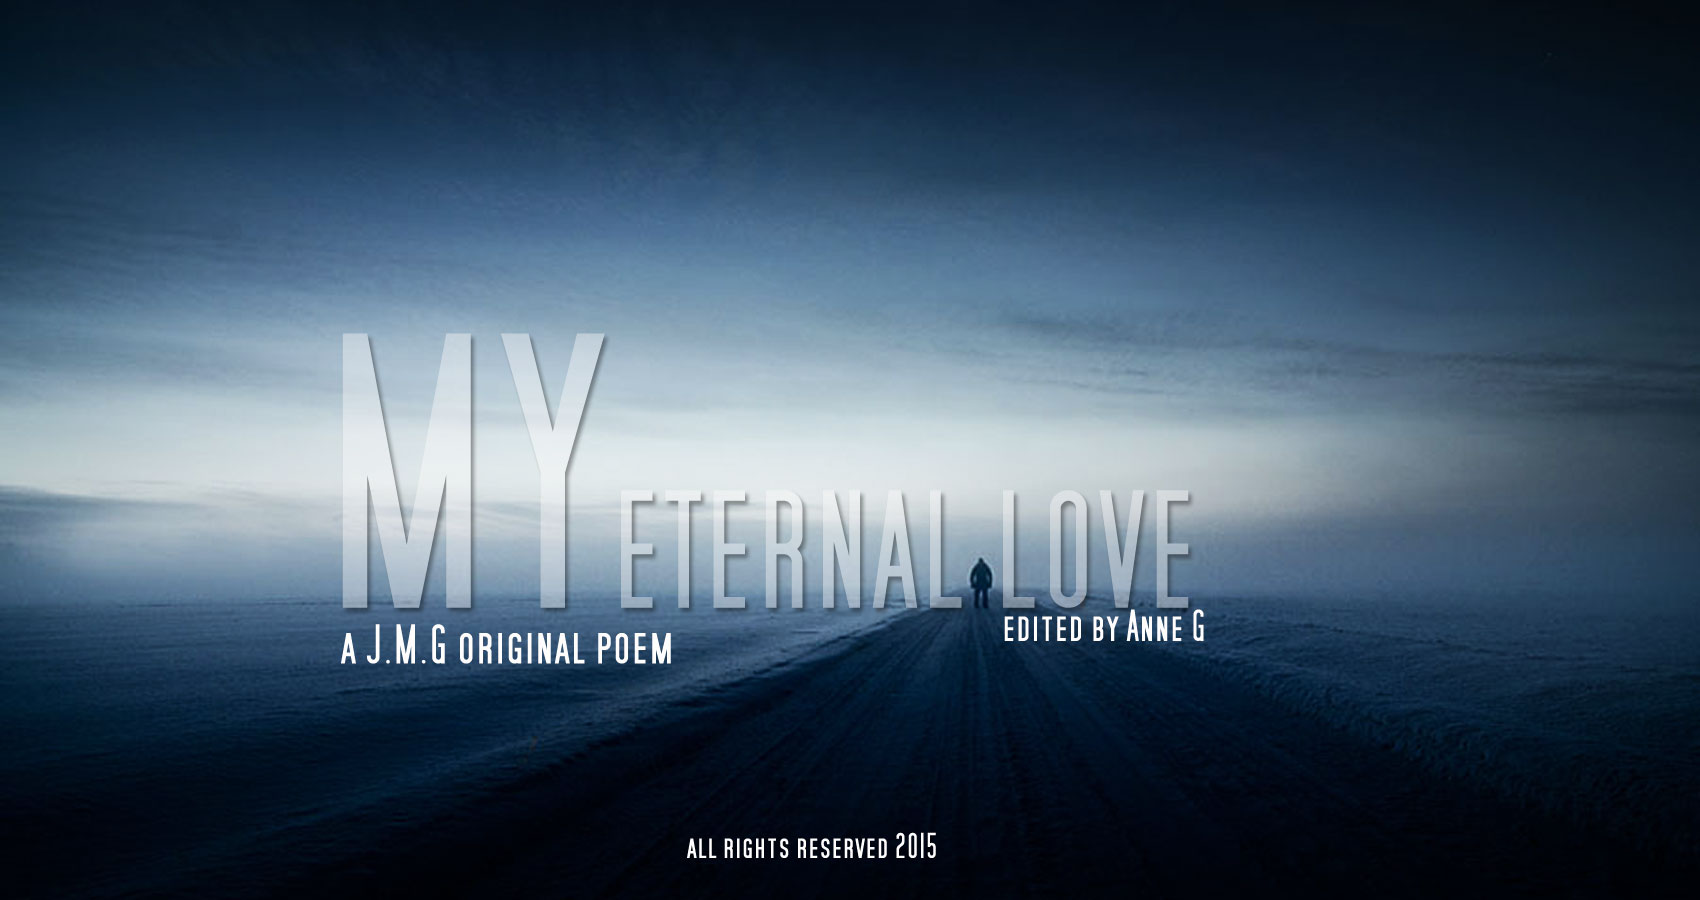 spillwords.com My Eternal Love by J.M.G.